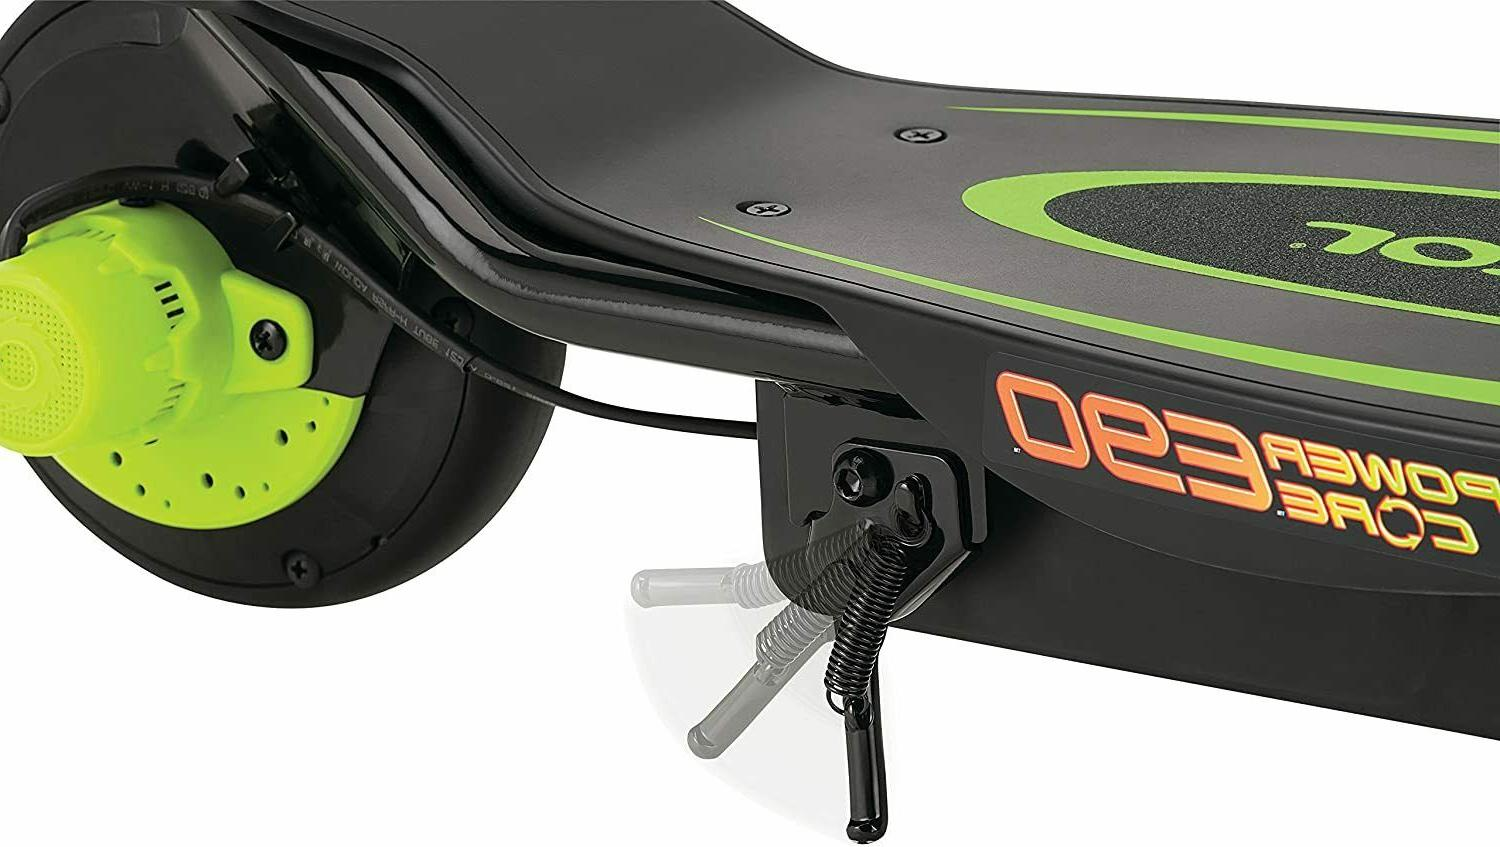 Razor Power Electric Scooter - Hub Motor Up mph and 80 Ride